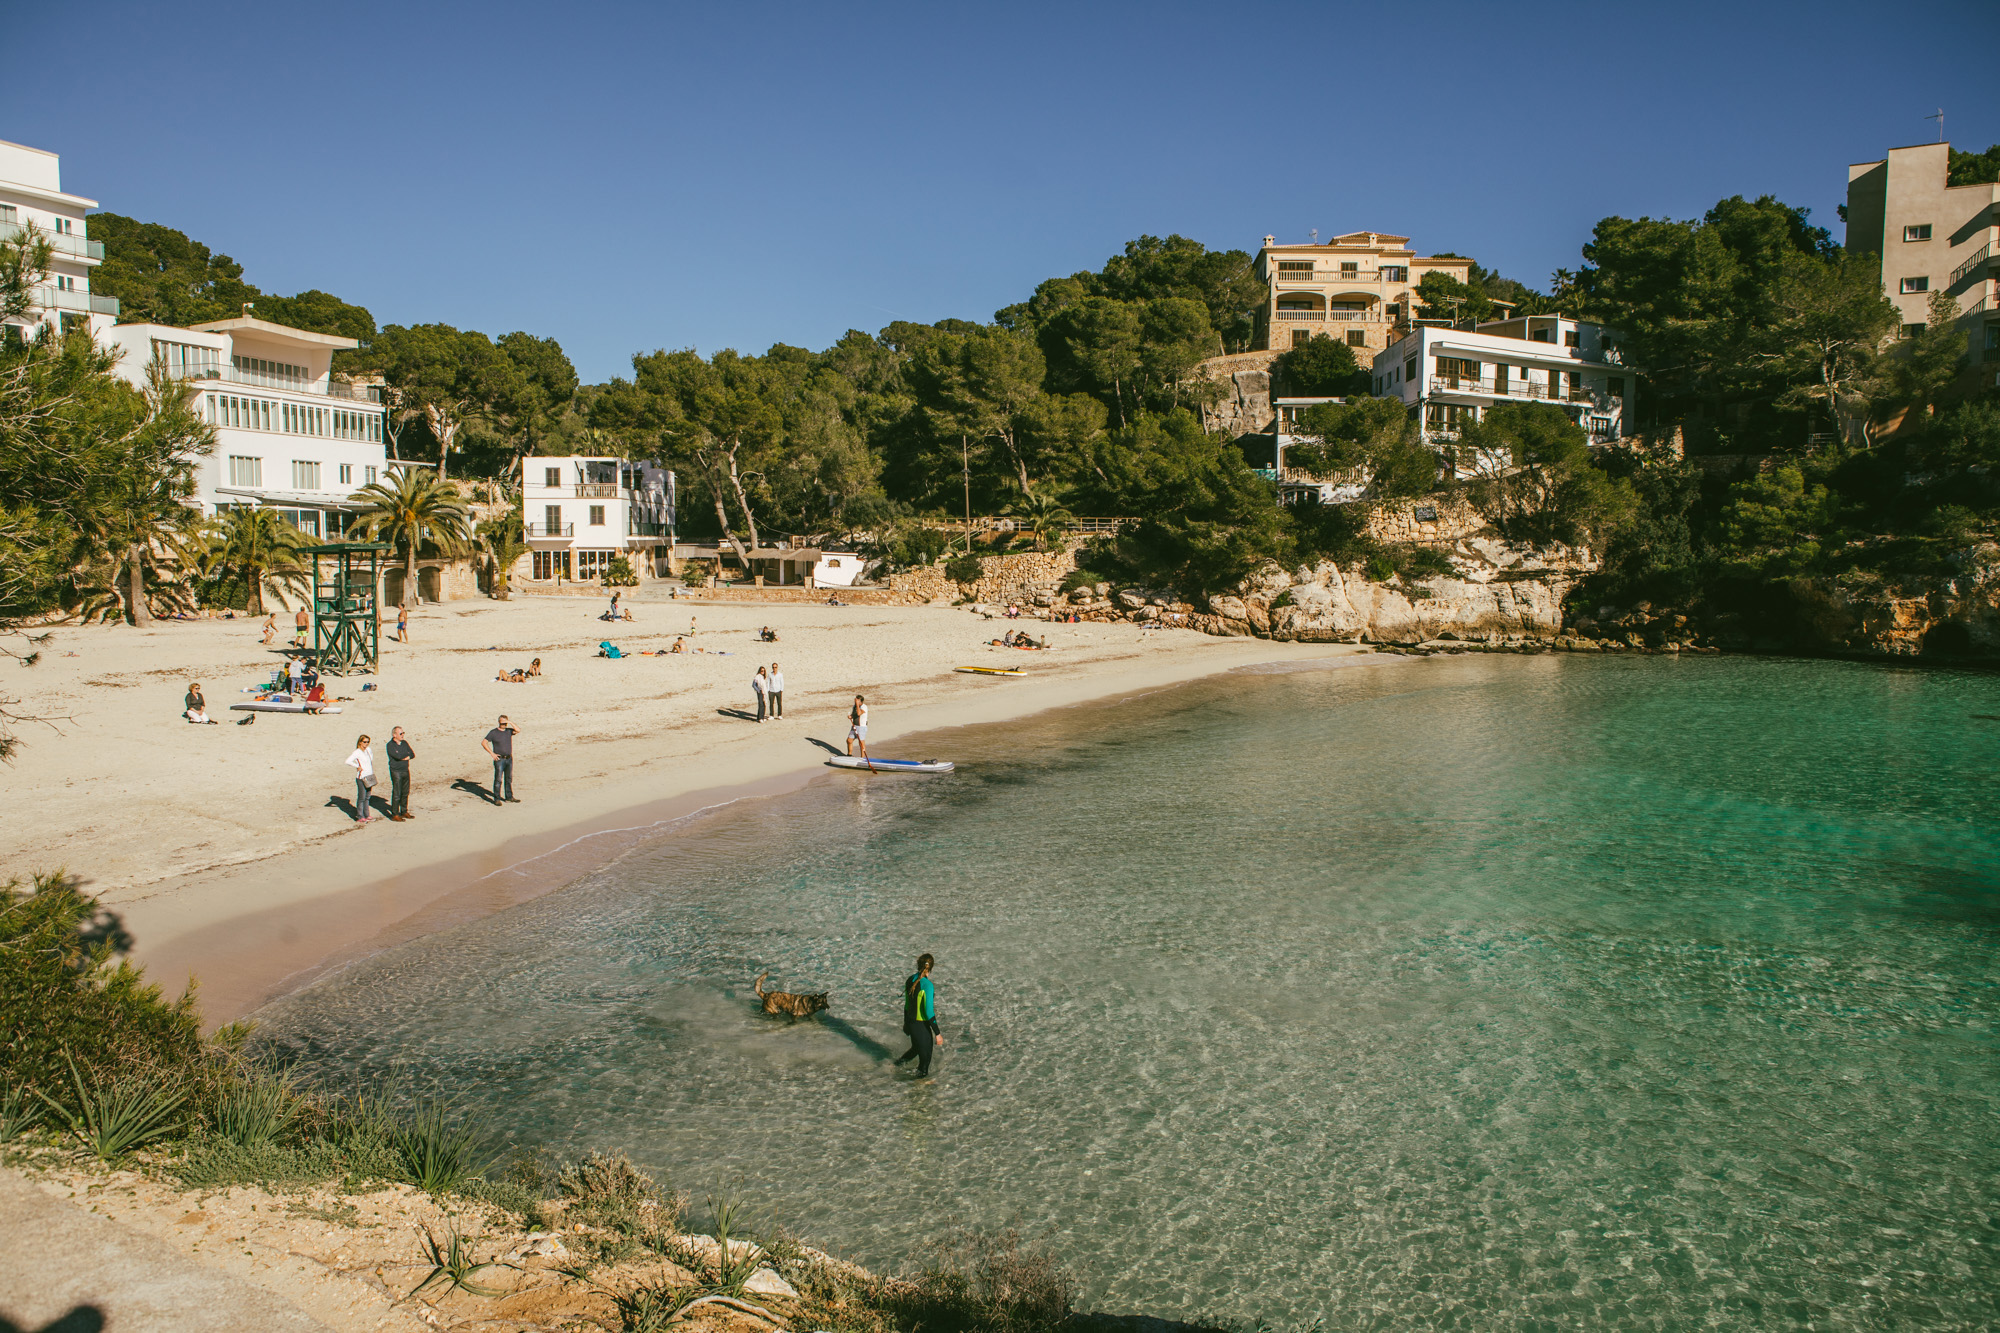 View of Cala Santanyí from the elevated walkway on the righthand side of the beach.